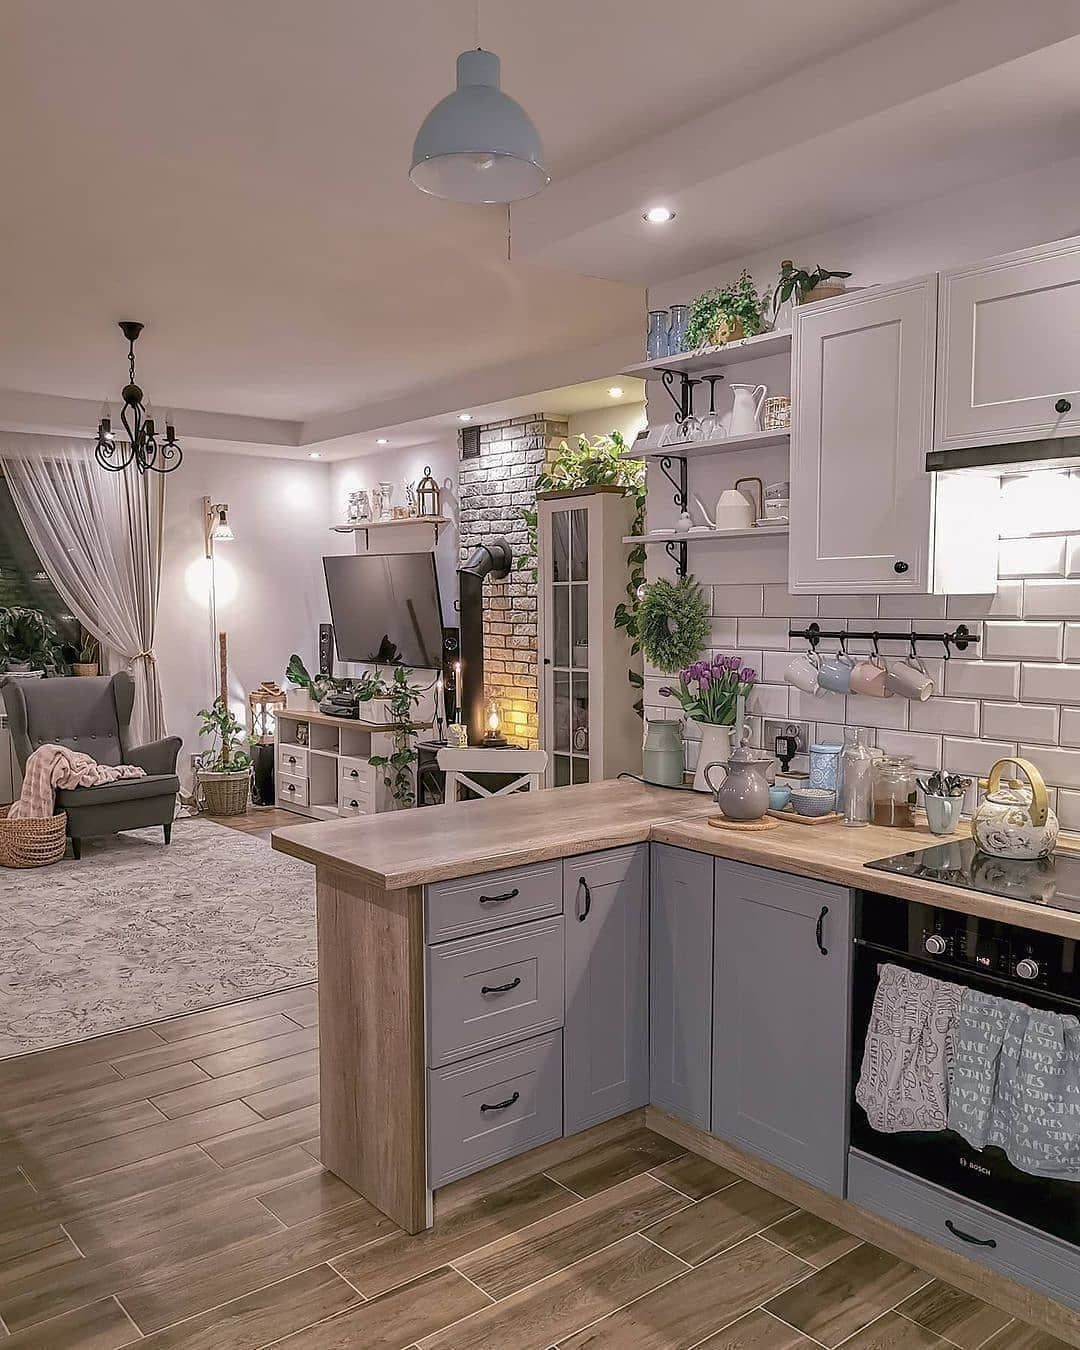 740 Decorating Ideas Small Kitchens In 2021 Kitchen Design Home